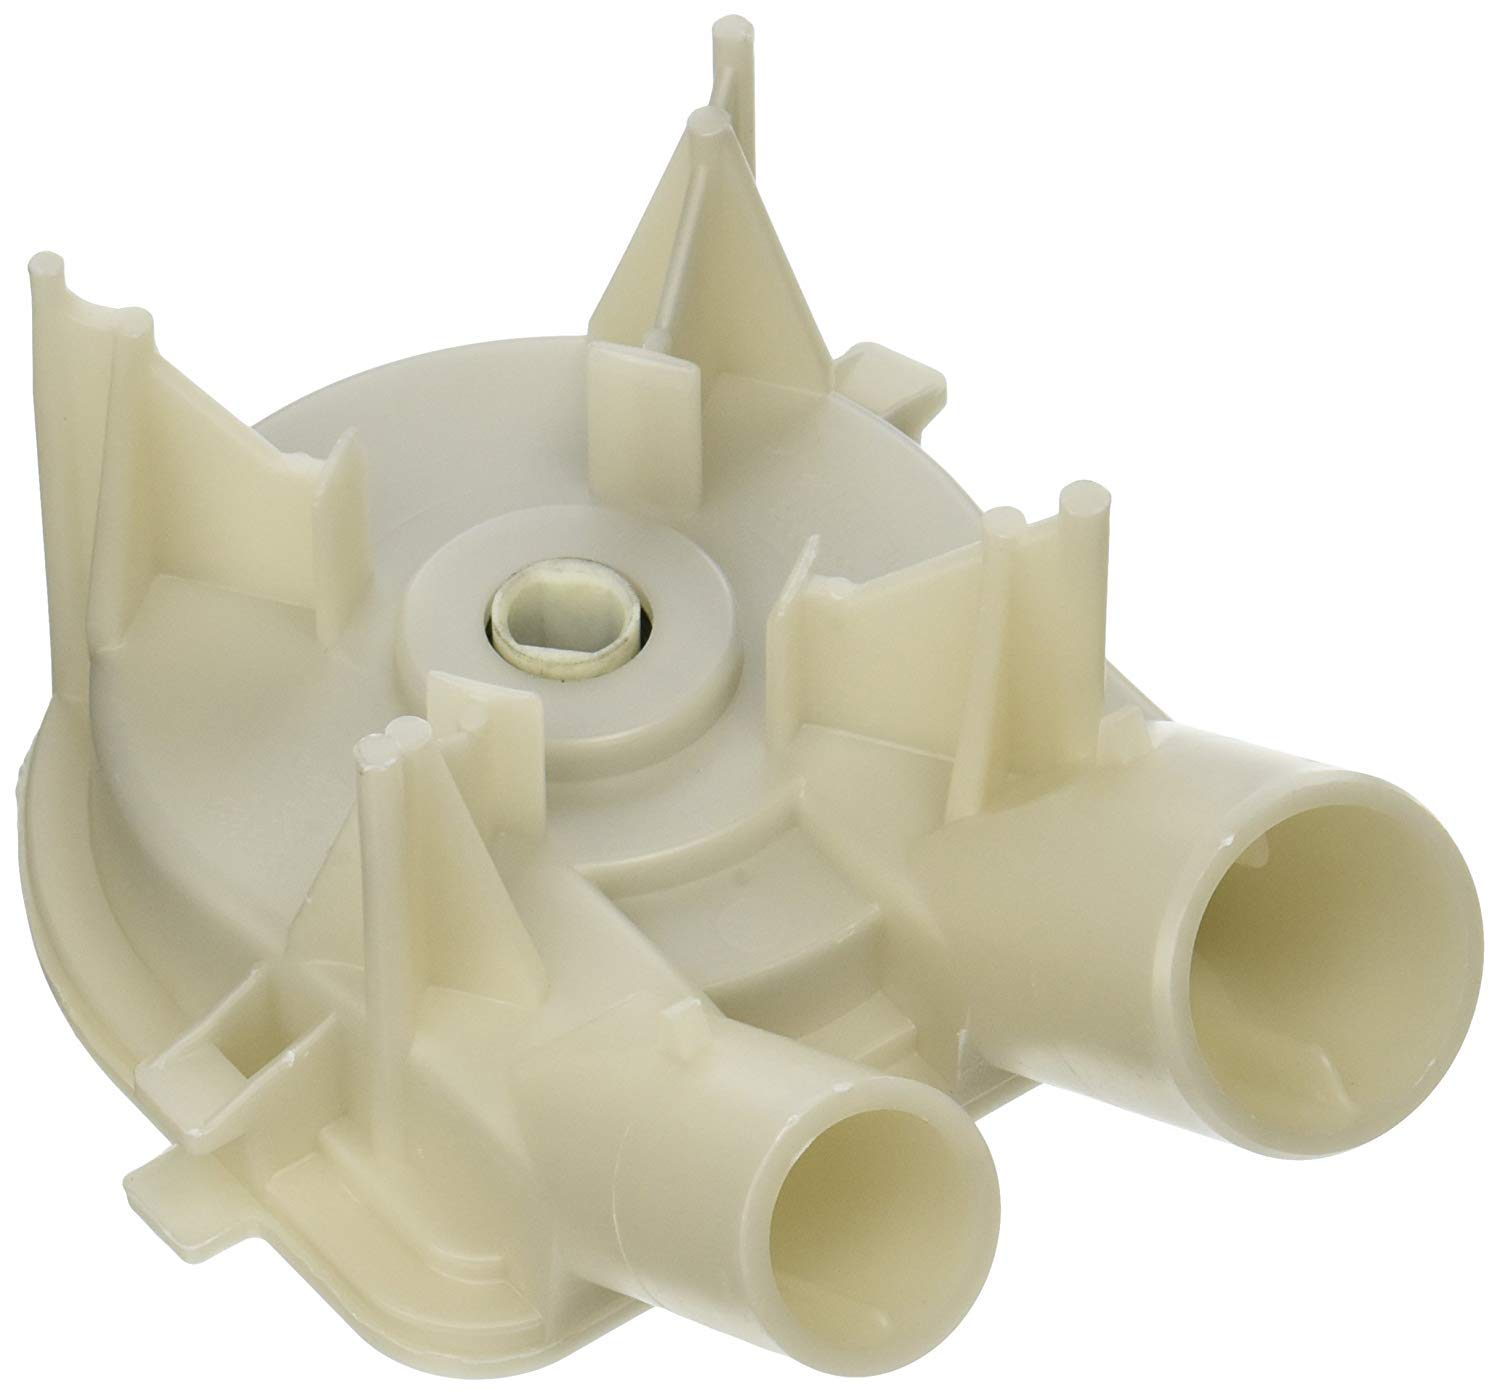 WASHER WATER DRAIN PUMP PART FOR WHIRLPOOL KENMORE 3363394, 3352293, 3352292